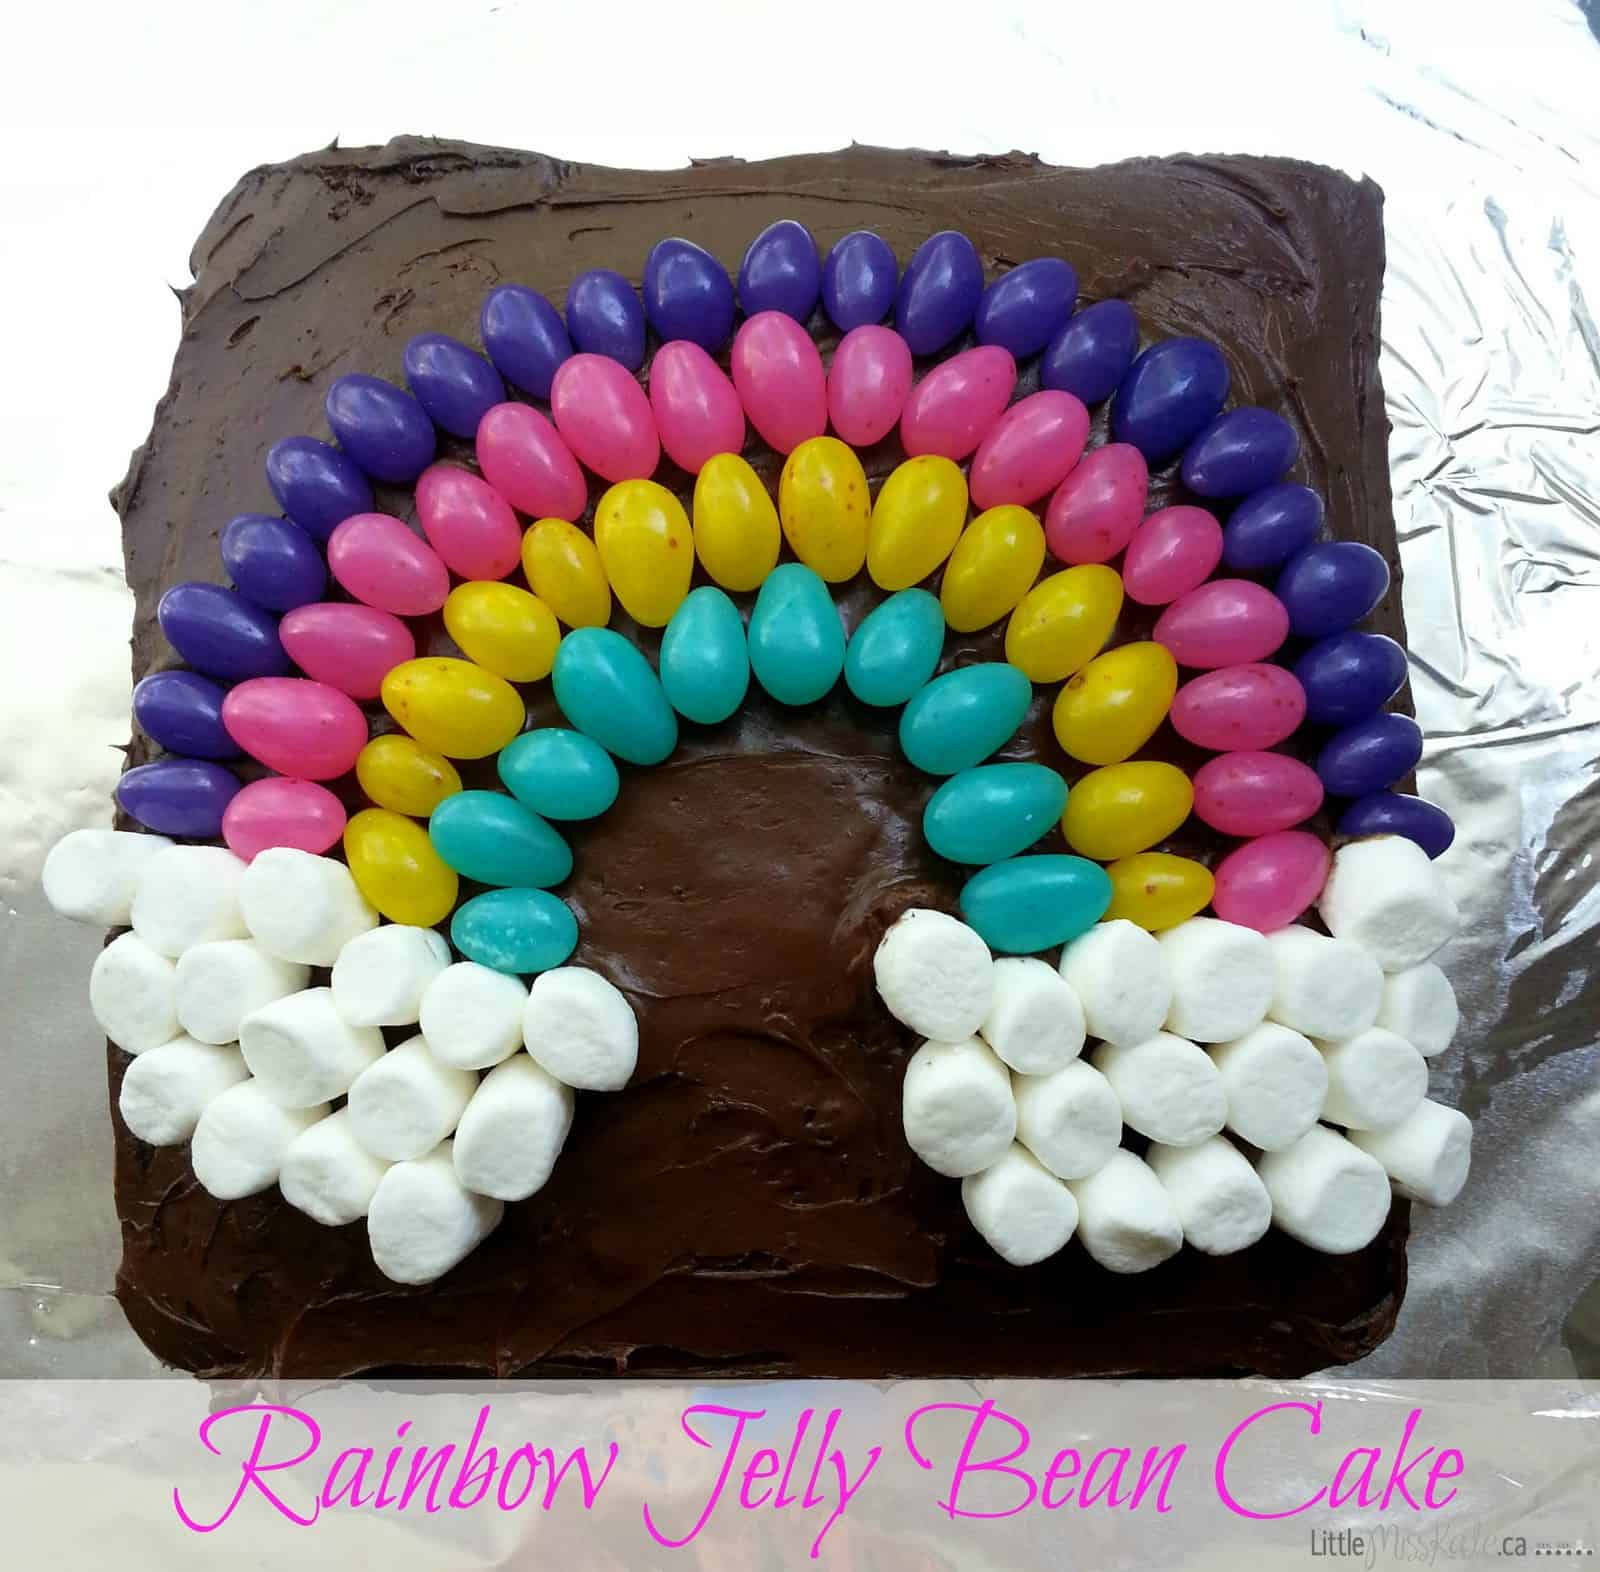 Easy Cake Decorating Idea   Jelly Bean Rainbow Cake   Little Miss Kate Easy Cake Decorating Idea     Jelly Bean Rainbow Cake